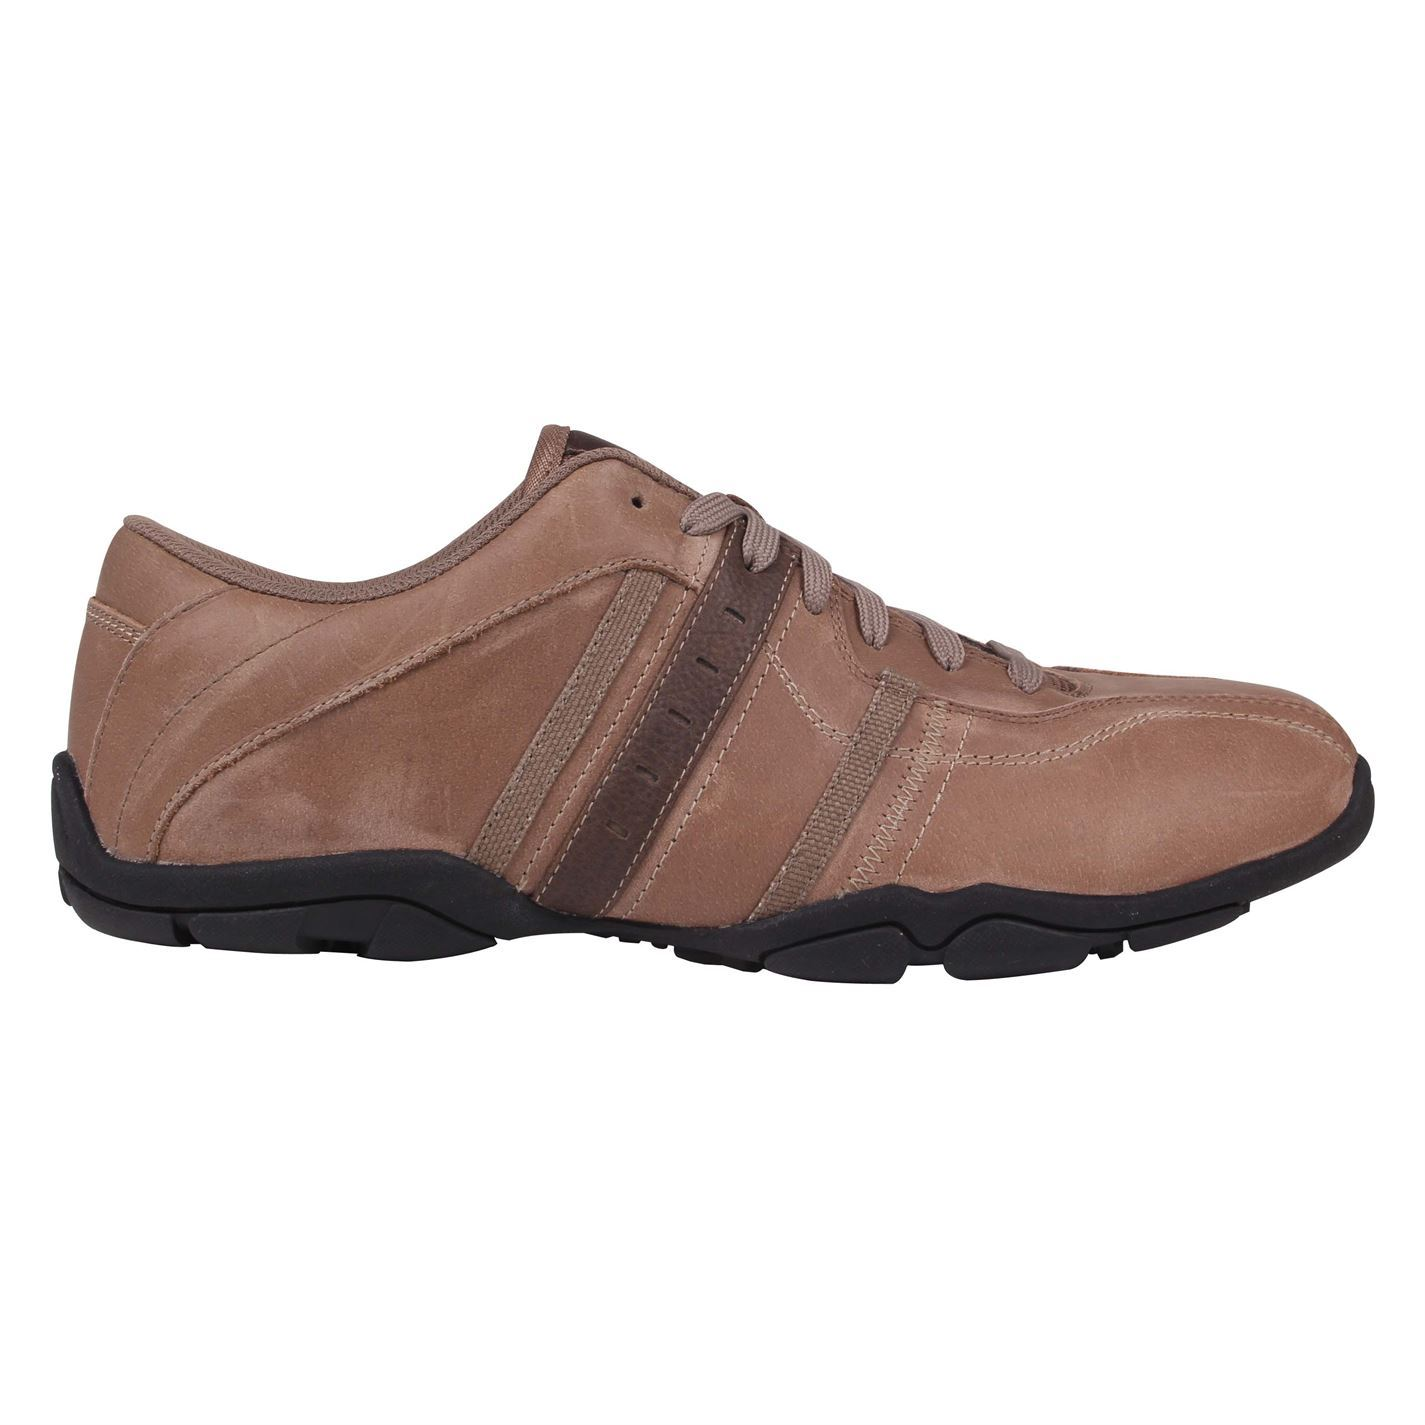 Kangol-Kauna-Trainers-Mens-Athleisure-Footwear-Shoes-Sneakers thumbnail 14